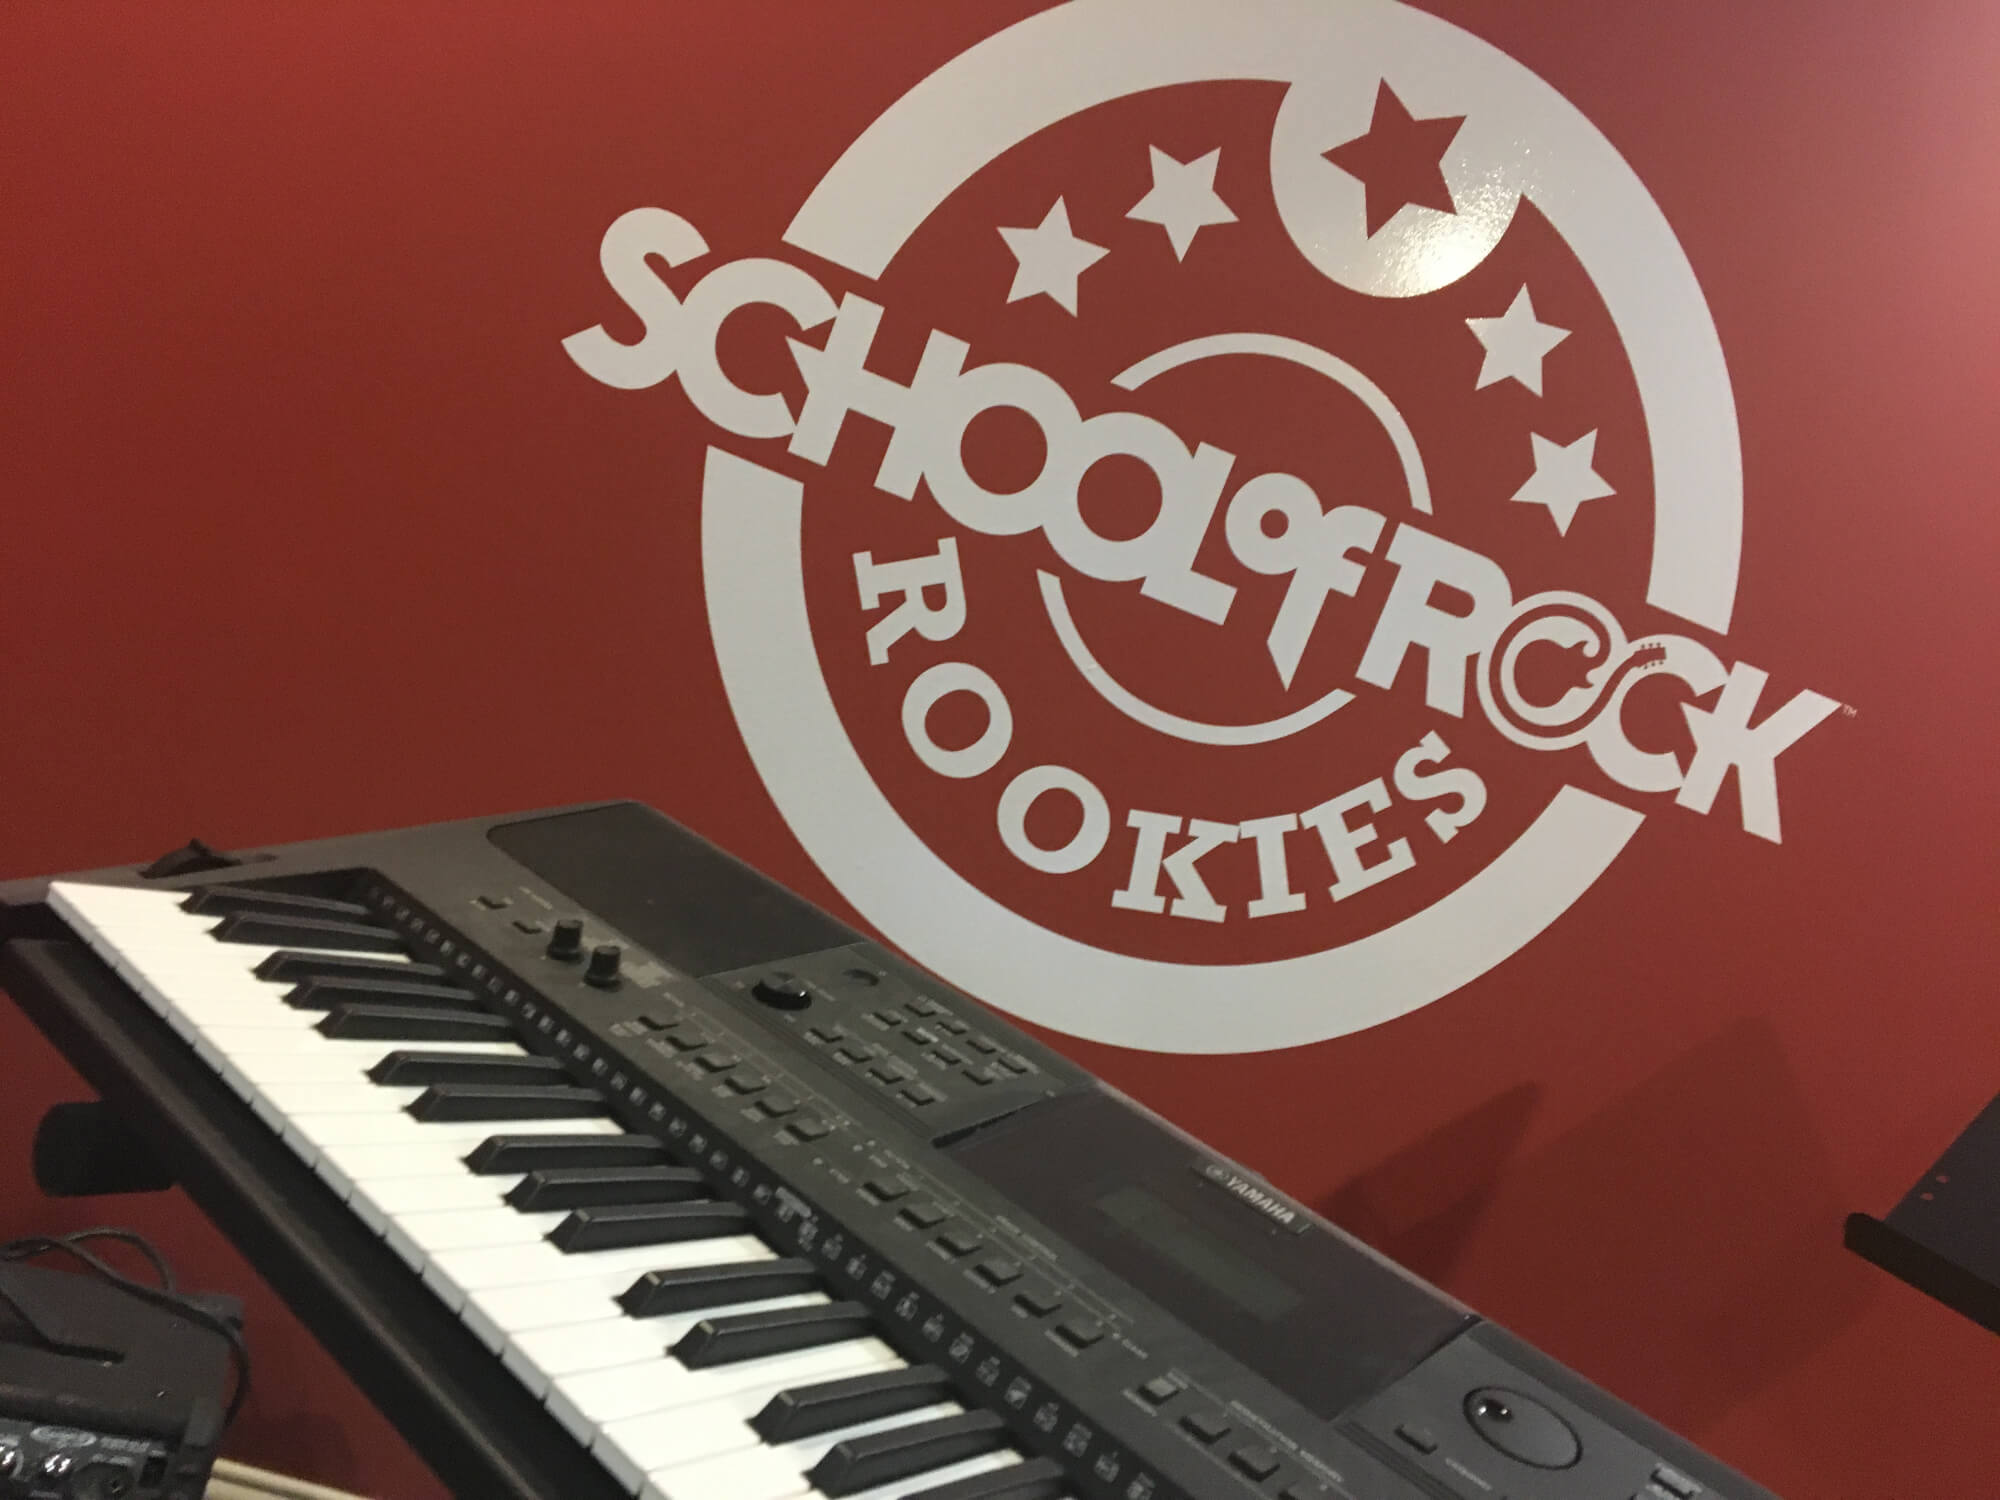 At School of Rock Calgary South we have our very own Rookies room and it rocks!